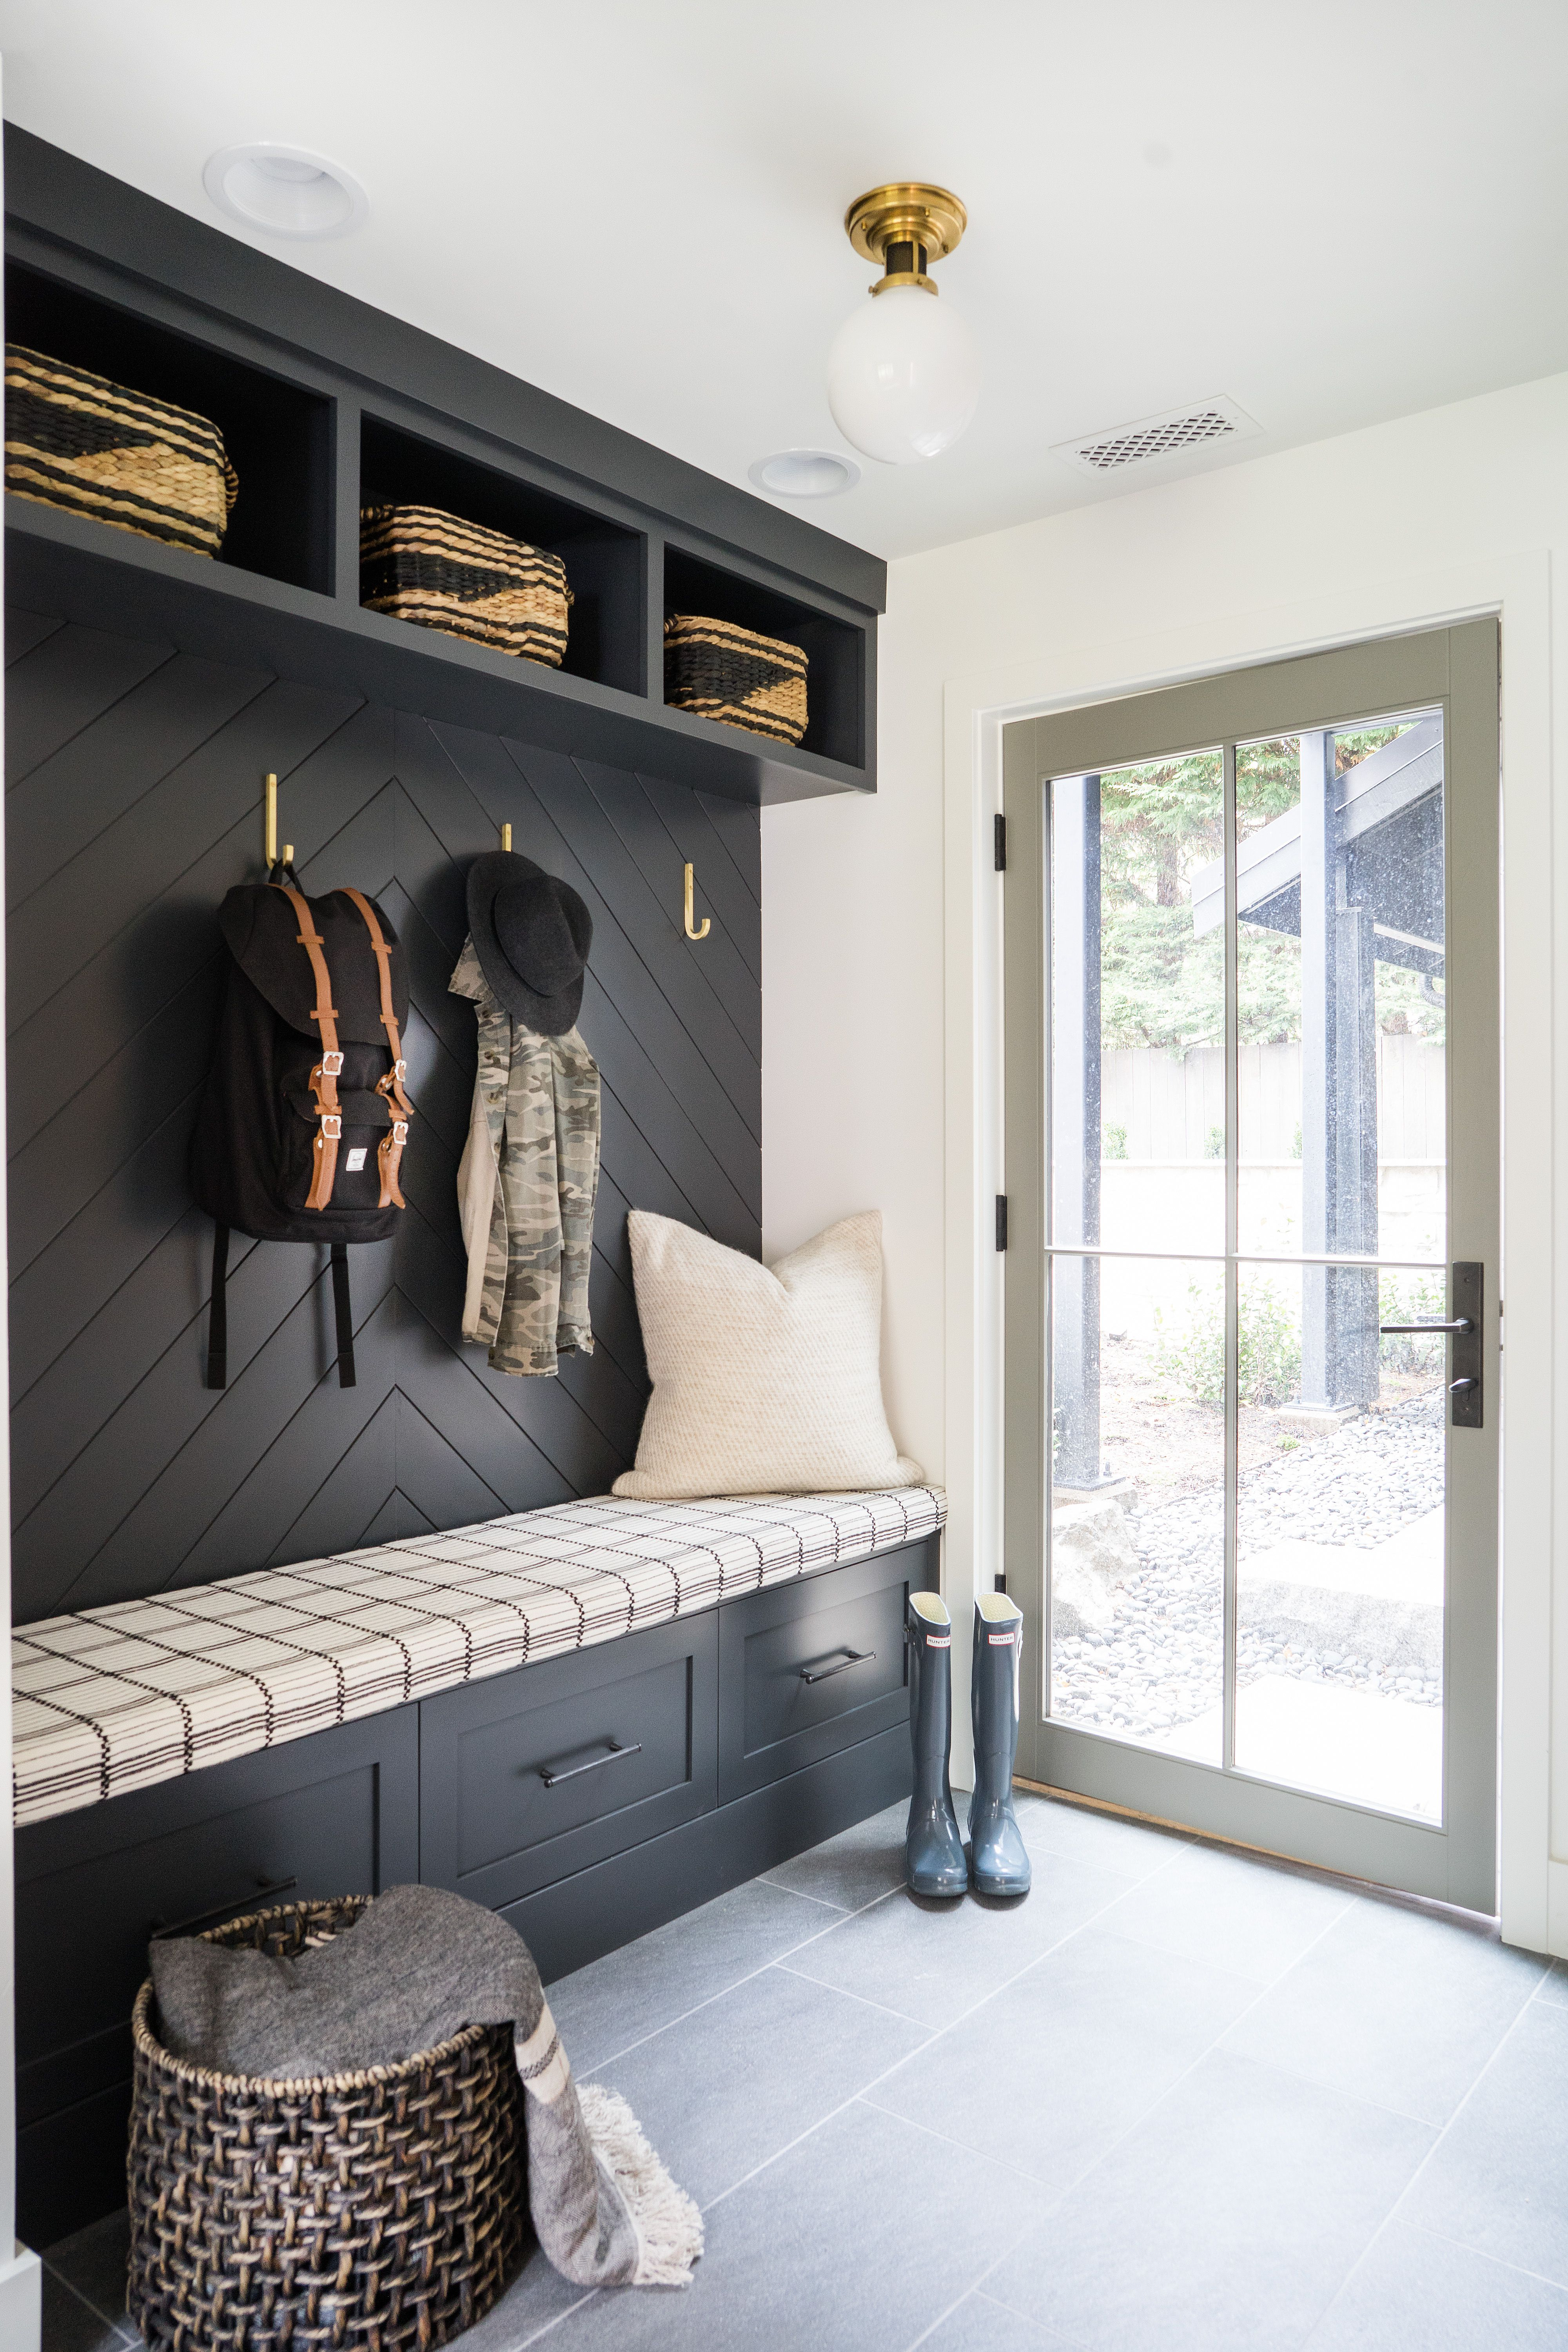 13 Mudroom Ideas to Keep Your Home Mess-Free